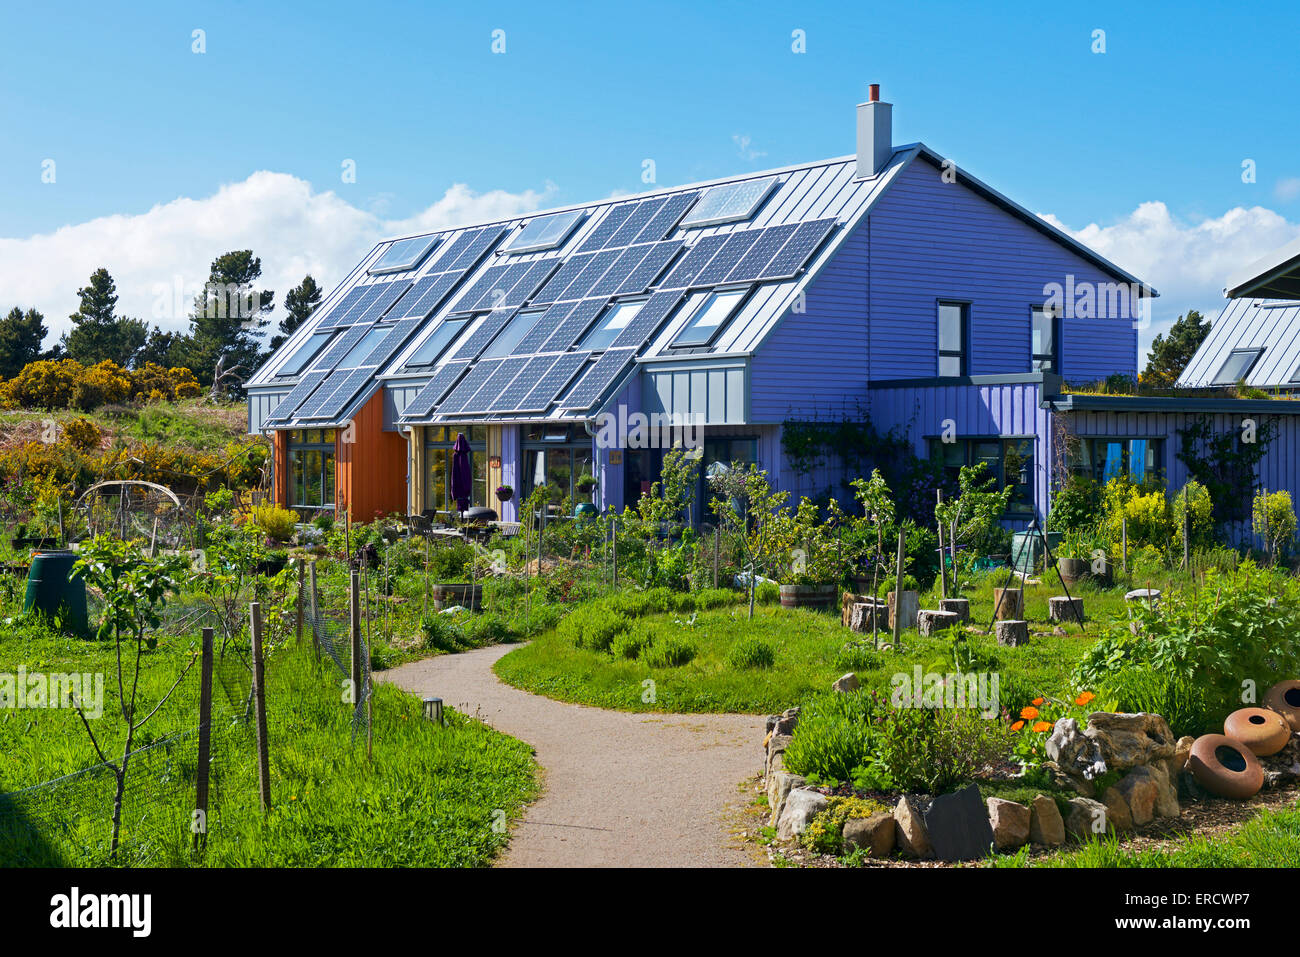 houses-in-eco-village-findhorn-foundation-moray-scotland-uk-ERCWP7.jpg